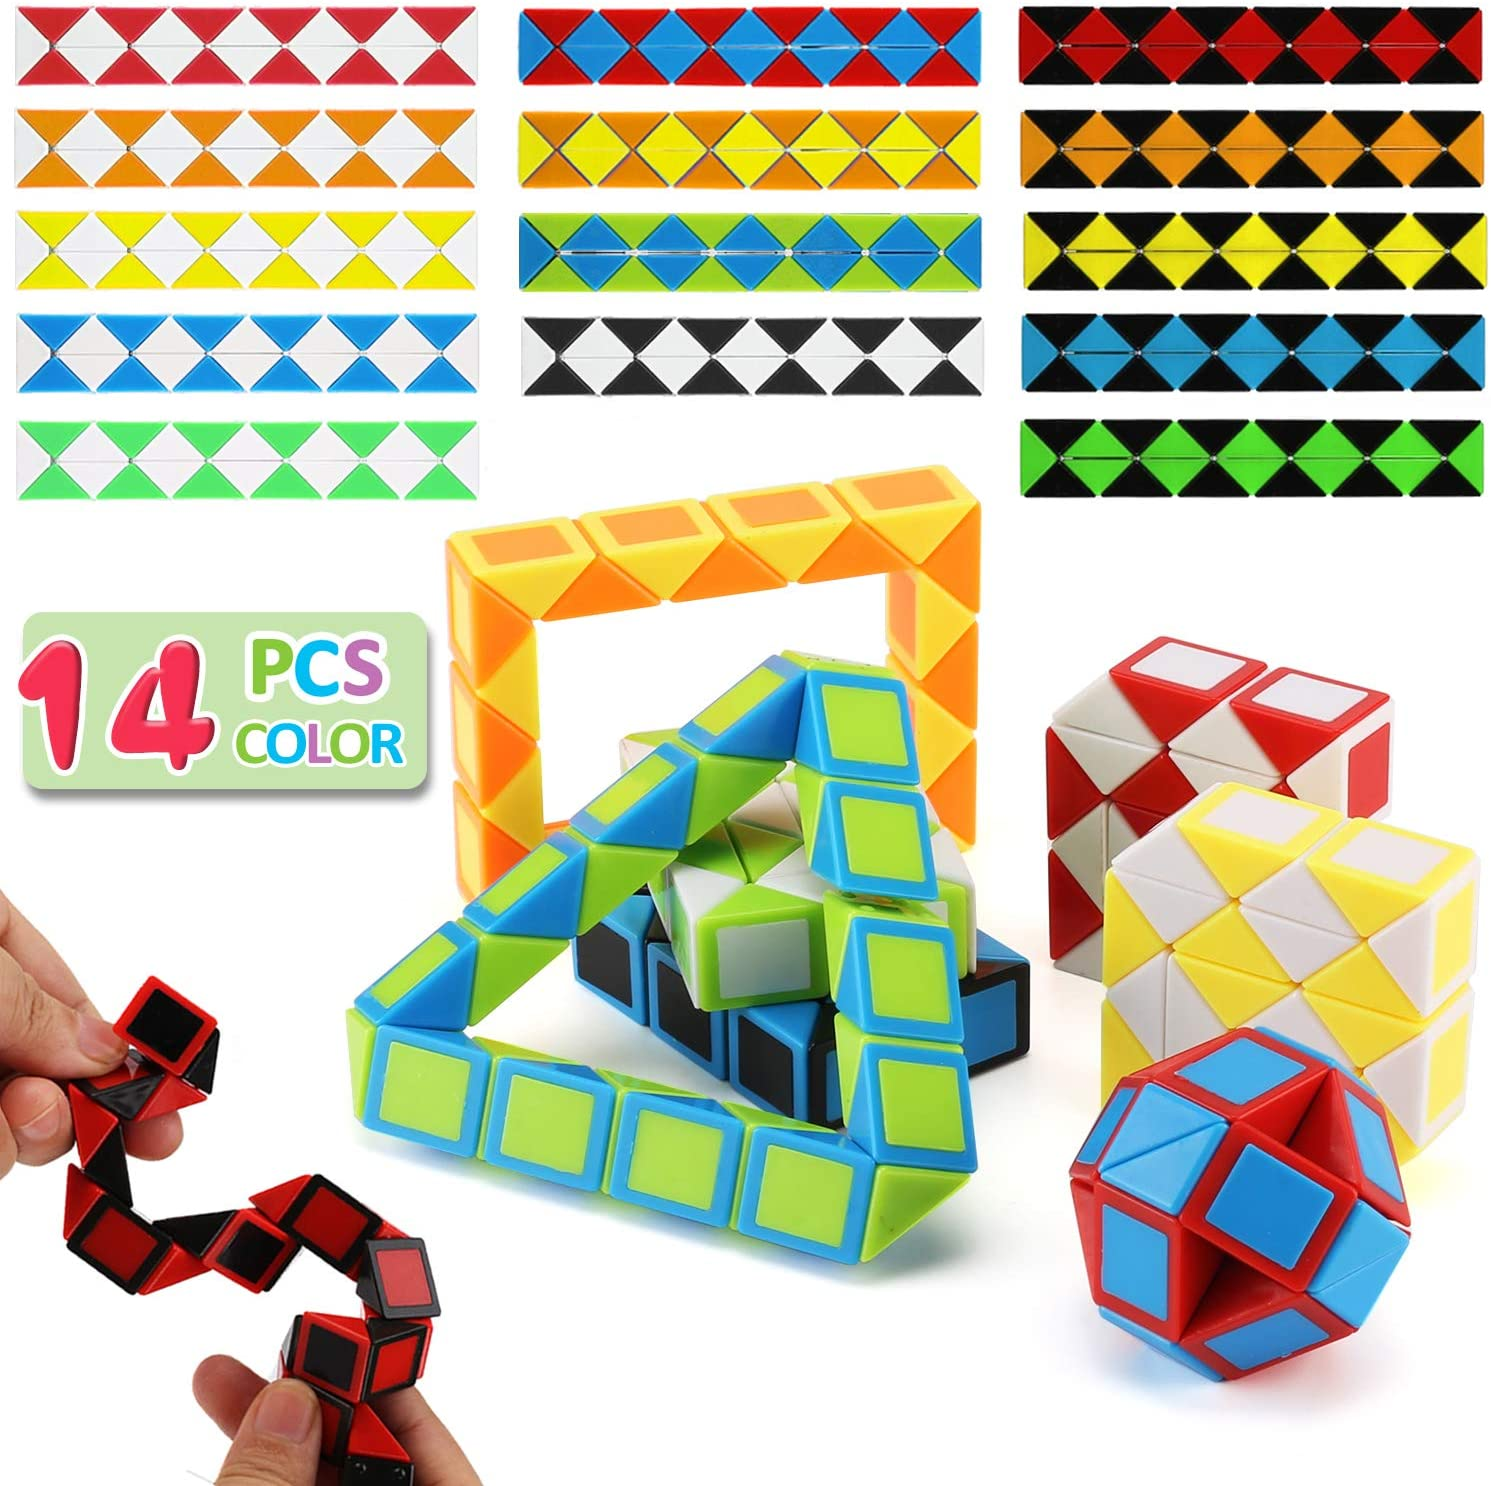 Snake Cube Puzzle Toys Set Twist Fidget Gift for Kids Child Boy Girl Brain Teaser Game, Mini Magic Cubes for Party Favors School Supplies Birthday